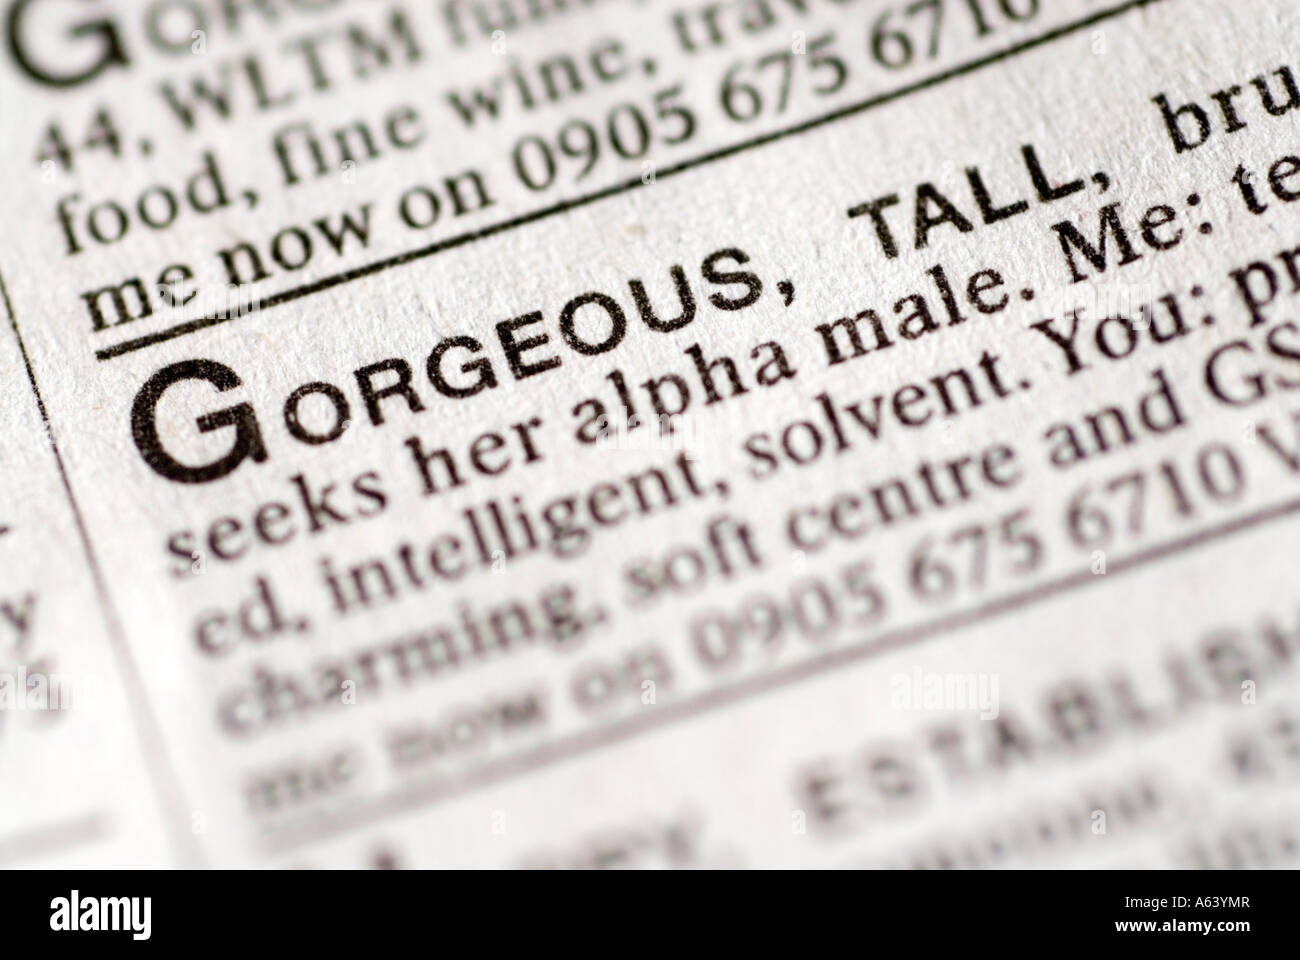 Singles ad in dating pages of newspaper - Stock Image